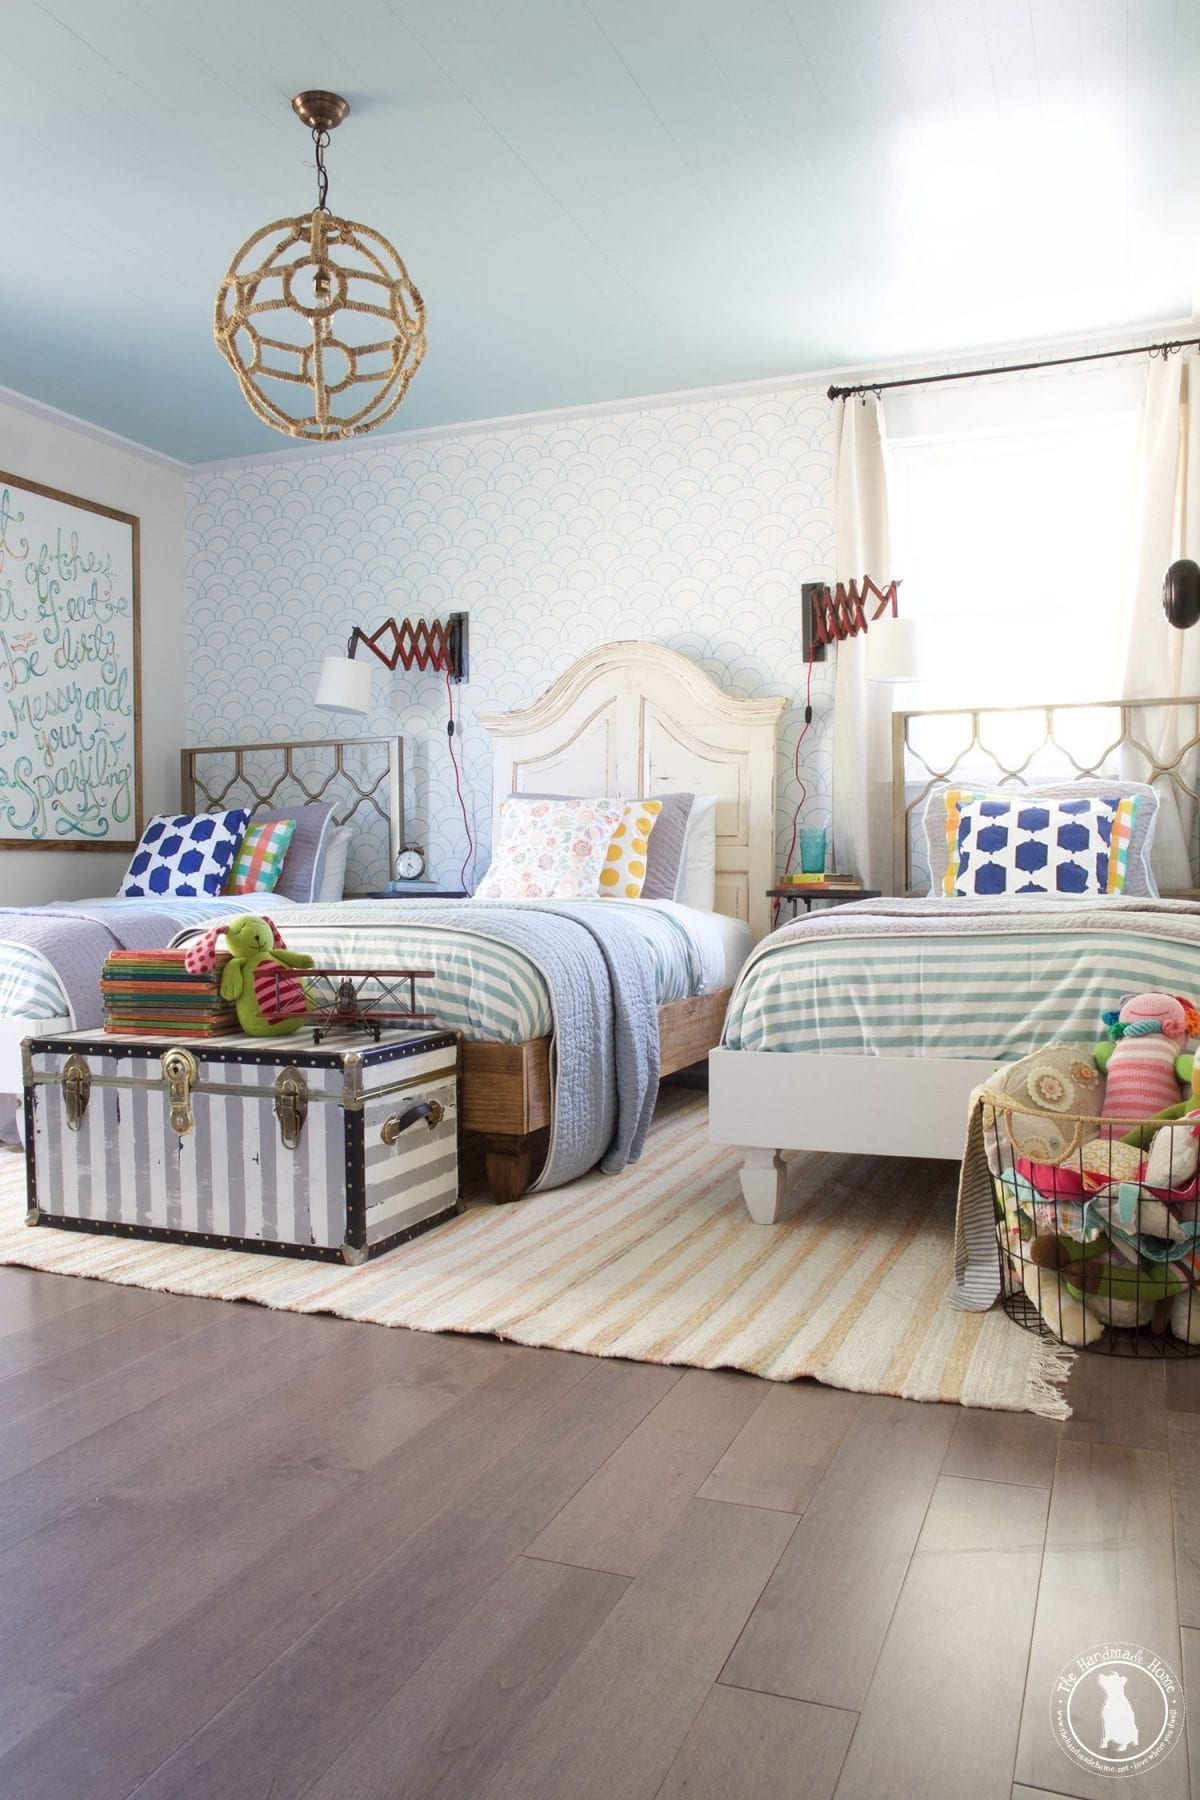 childrens_room_shared_space-1